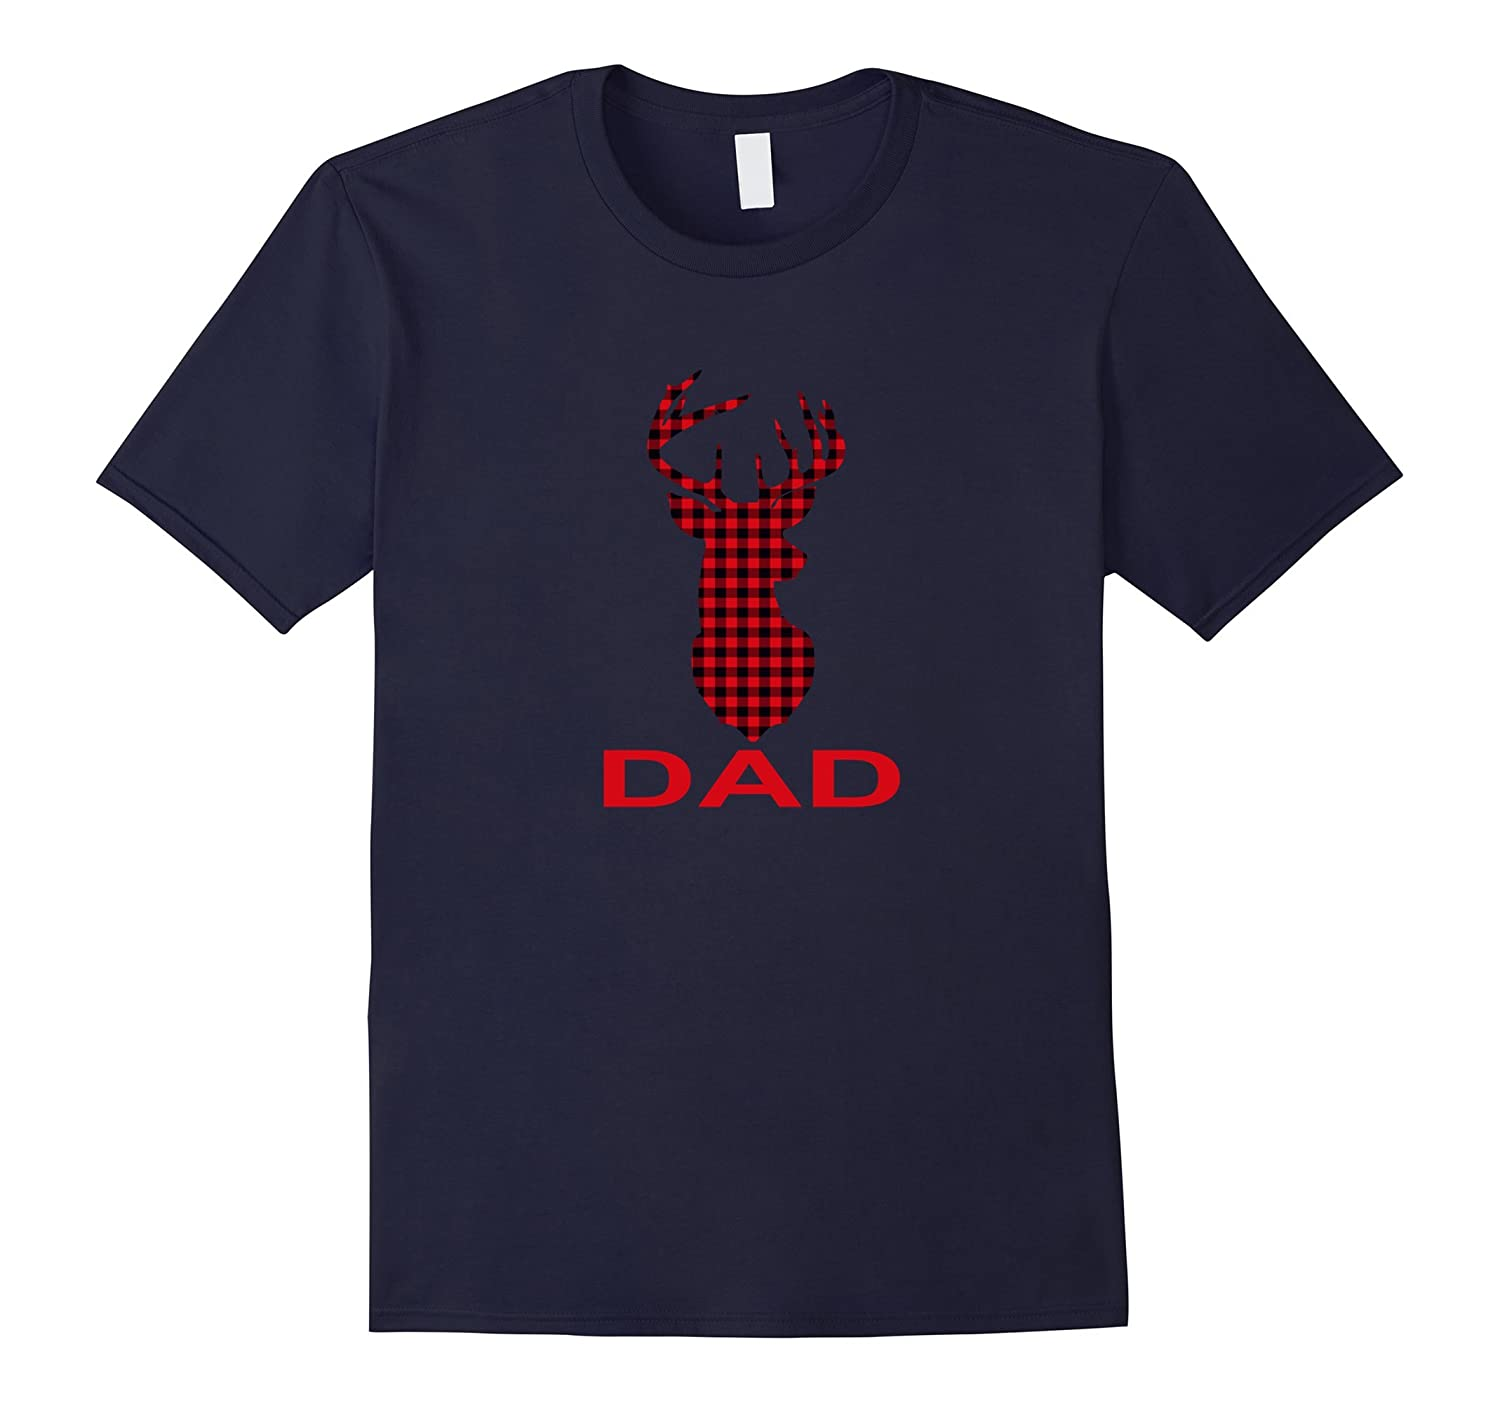 Dad Deer T-Shirt Cute Reindeer Gift Christmas Family-FL